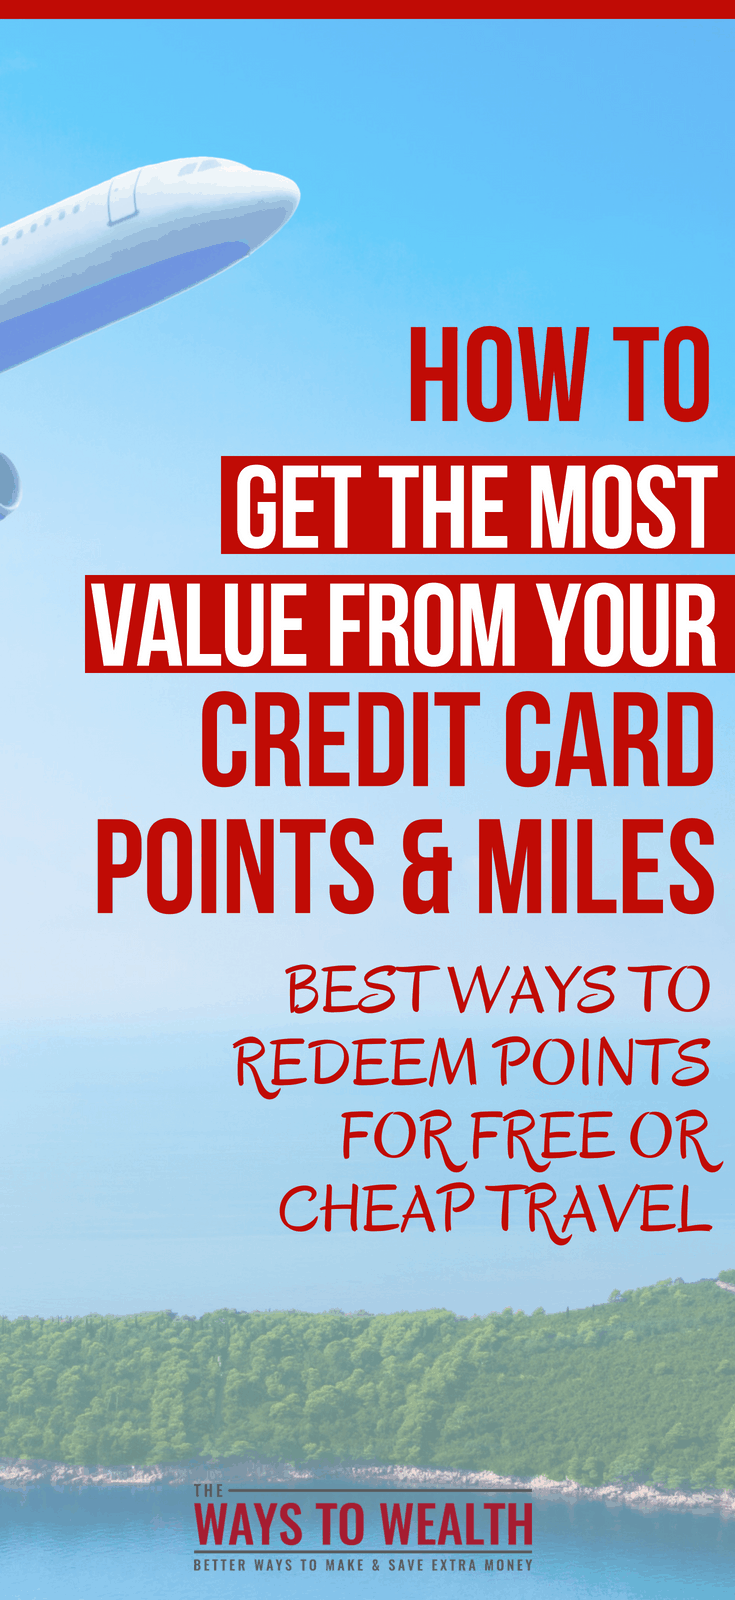 Redeeming Credit Card Points for Travel (A Beginner's Guide)travel hacking |credit card hacking |travel hacking tips |chase ultimate rewards |american express rewards |airline miles how to use #thewaystowealth #travelhacking #travel #traveltips